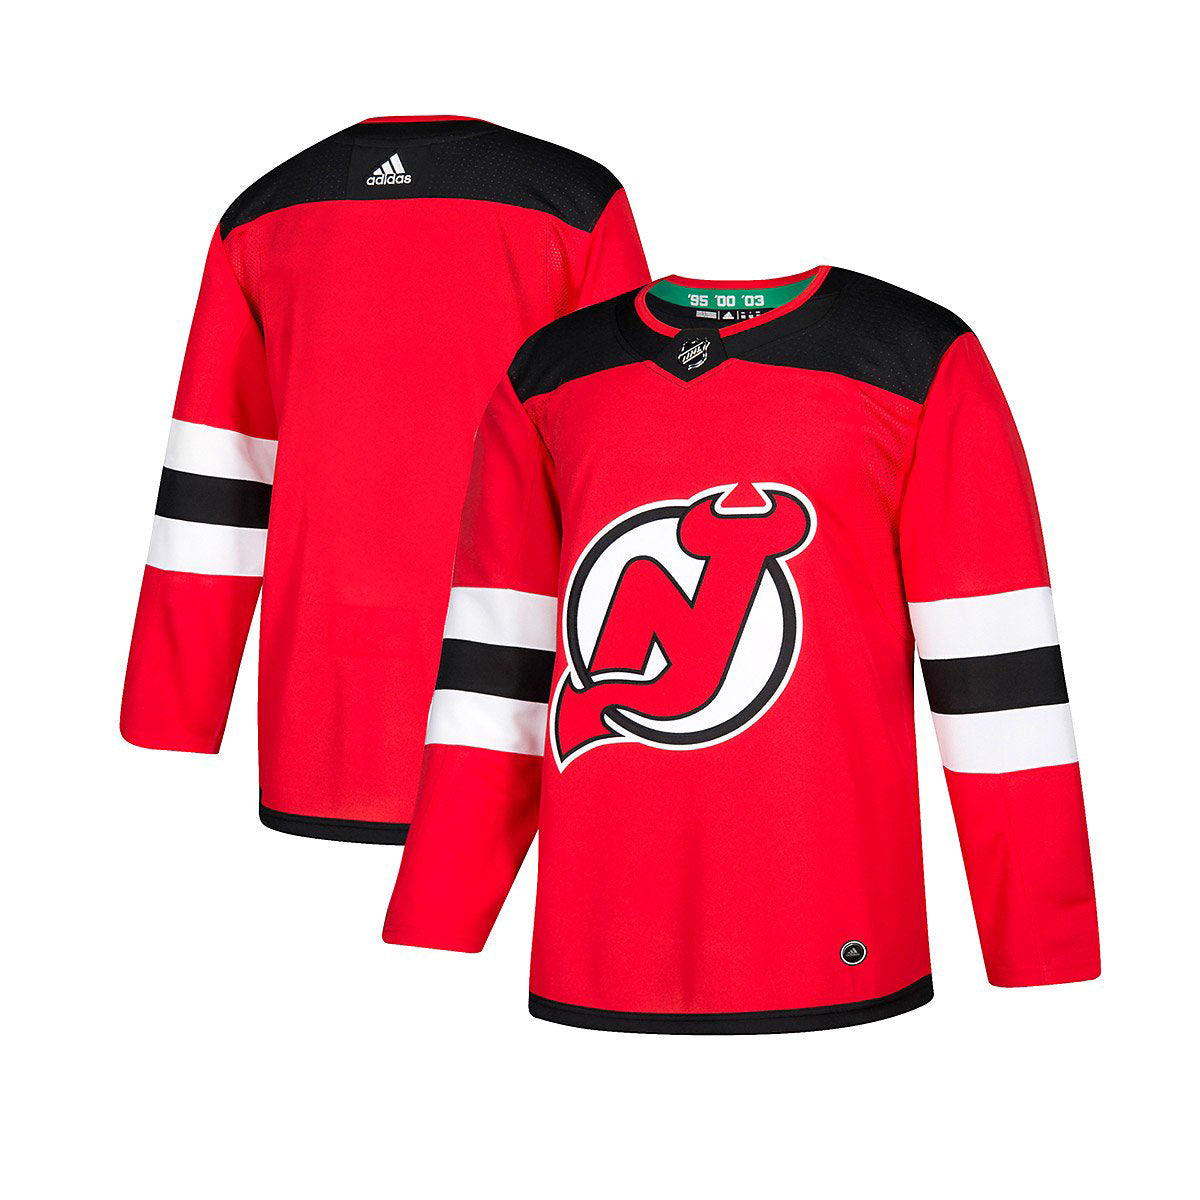 competitive price b8c8a e05c8 New Jersey Devils Adidas Authentic Senior Home Jersey